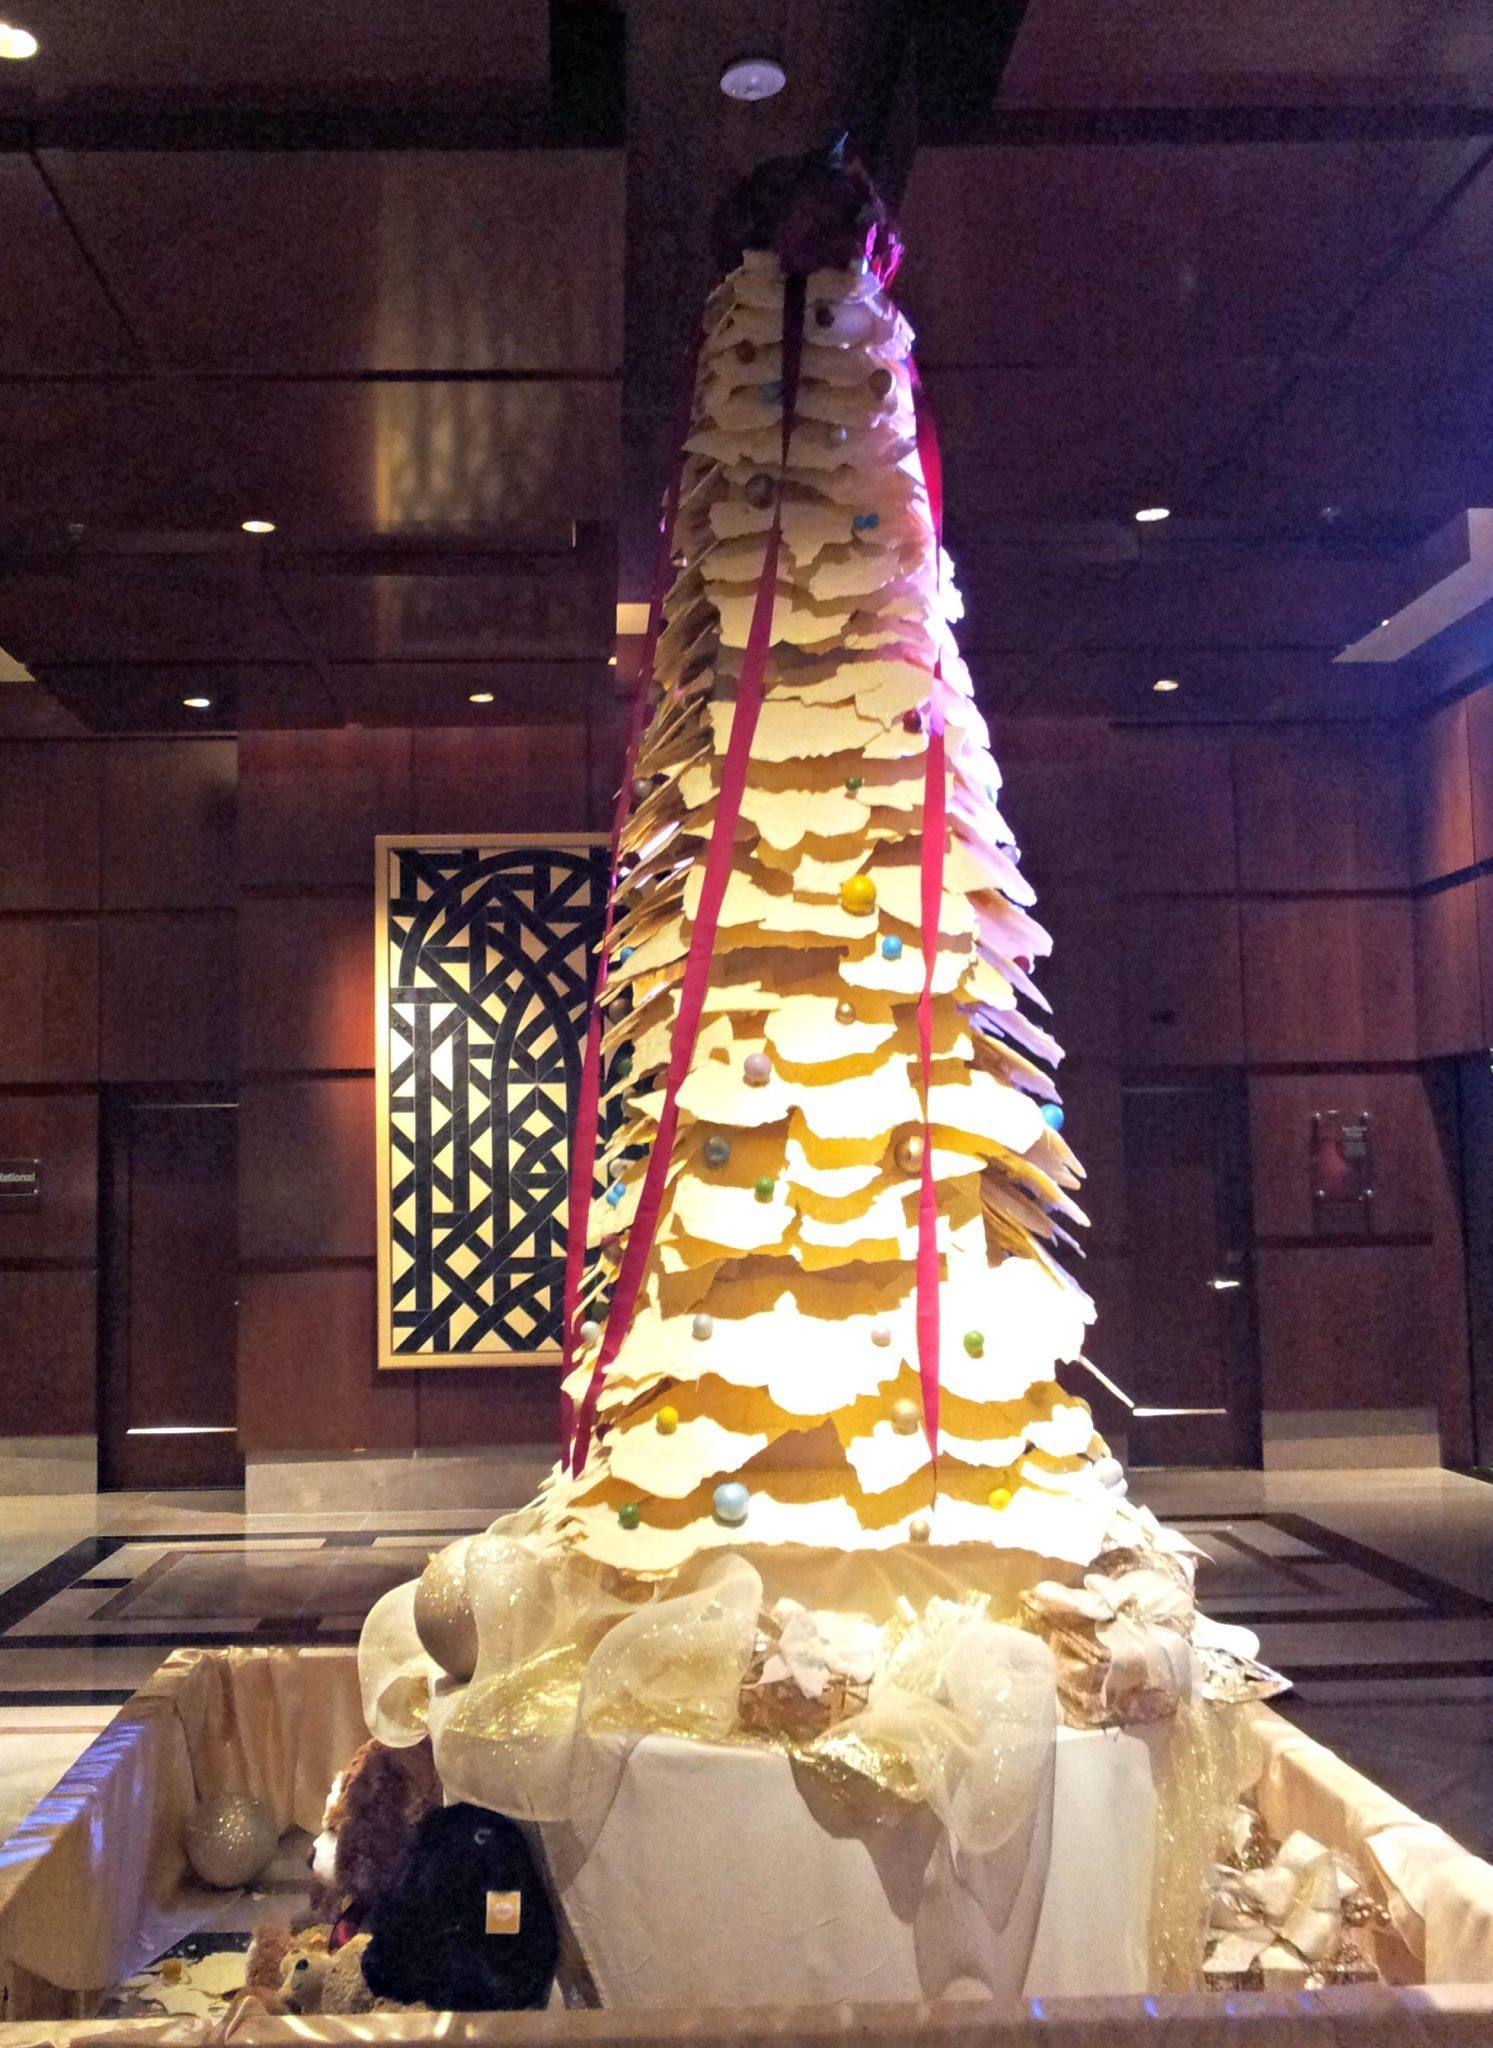 600 pounds of White Chocolate, Ritz-Carlton Tree